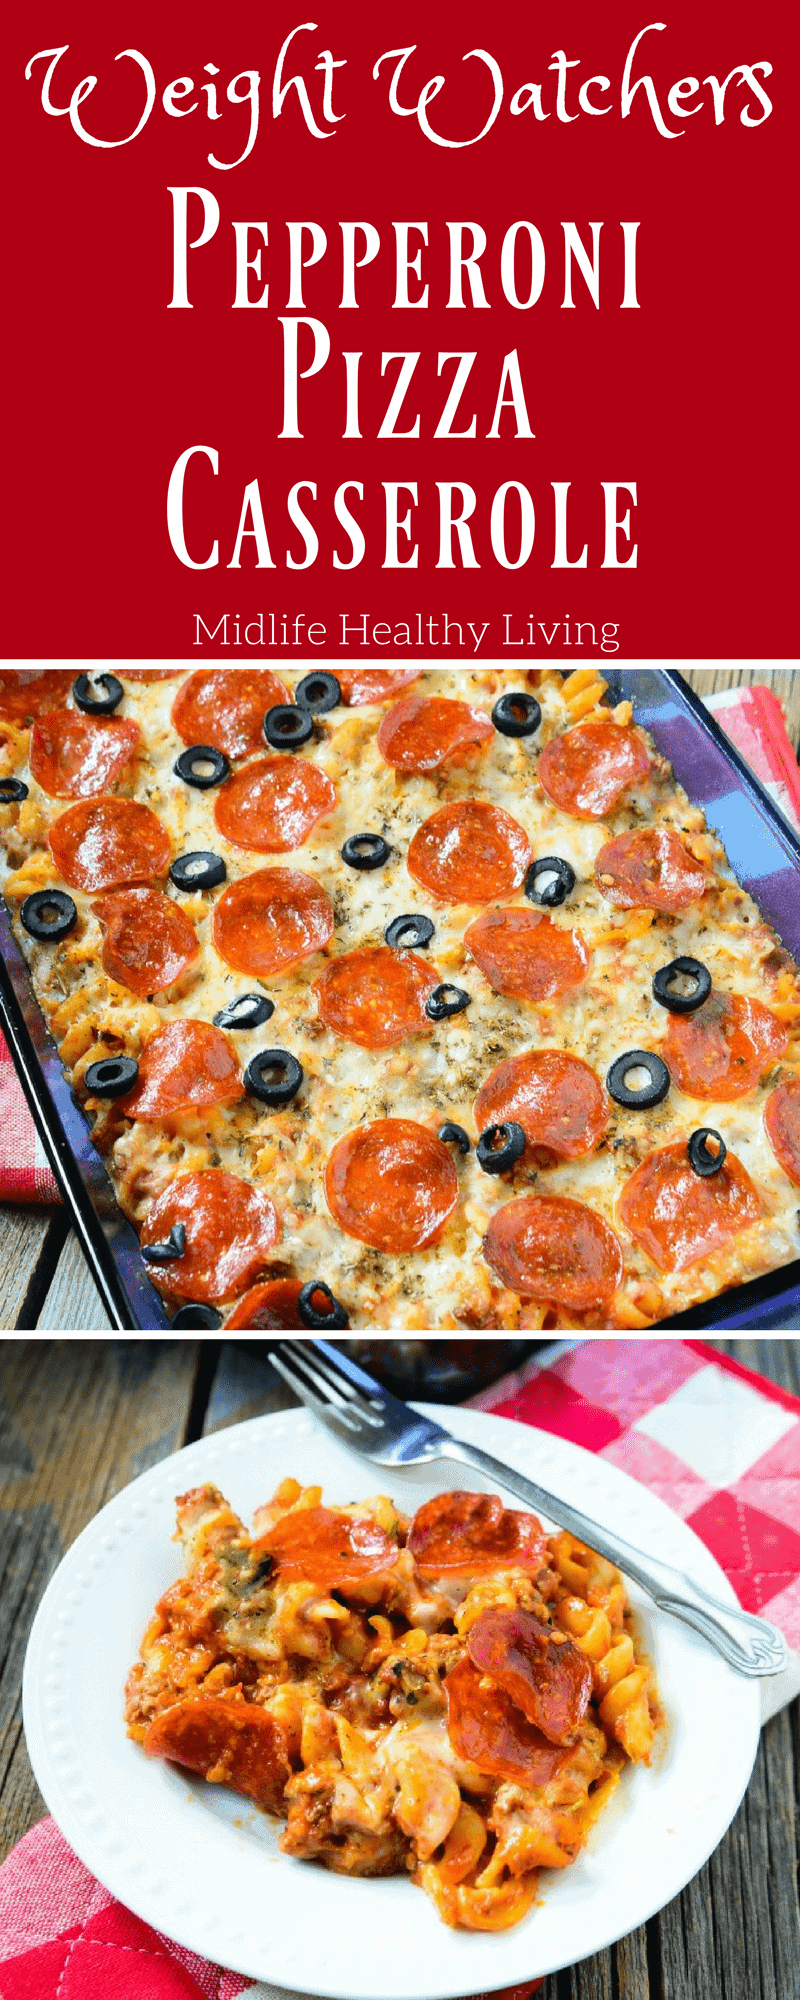 Try this delicious Weight Watchers friendly Pepperoni Pizza Casserole. It's only 7 Freestyle SmartPoints per serving. A great comfort food to feed the whole family!